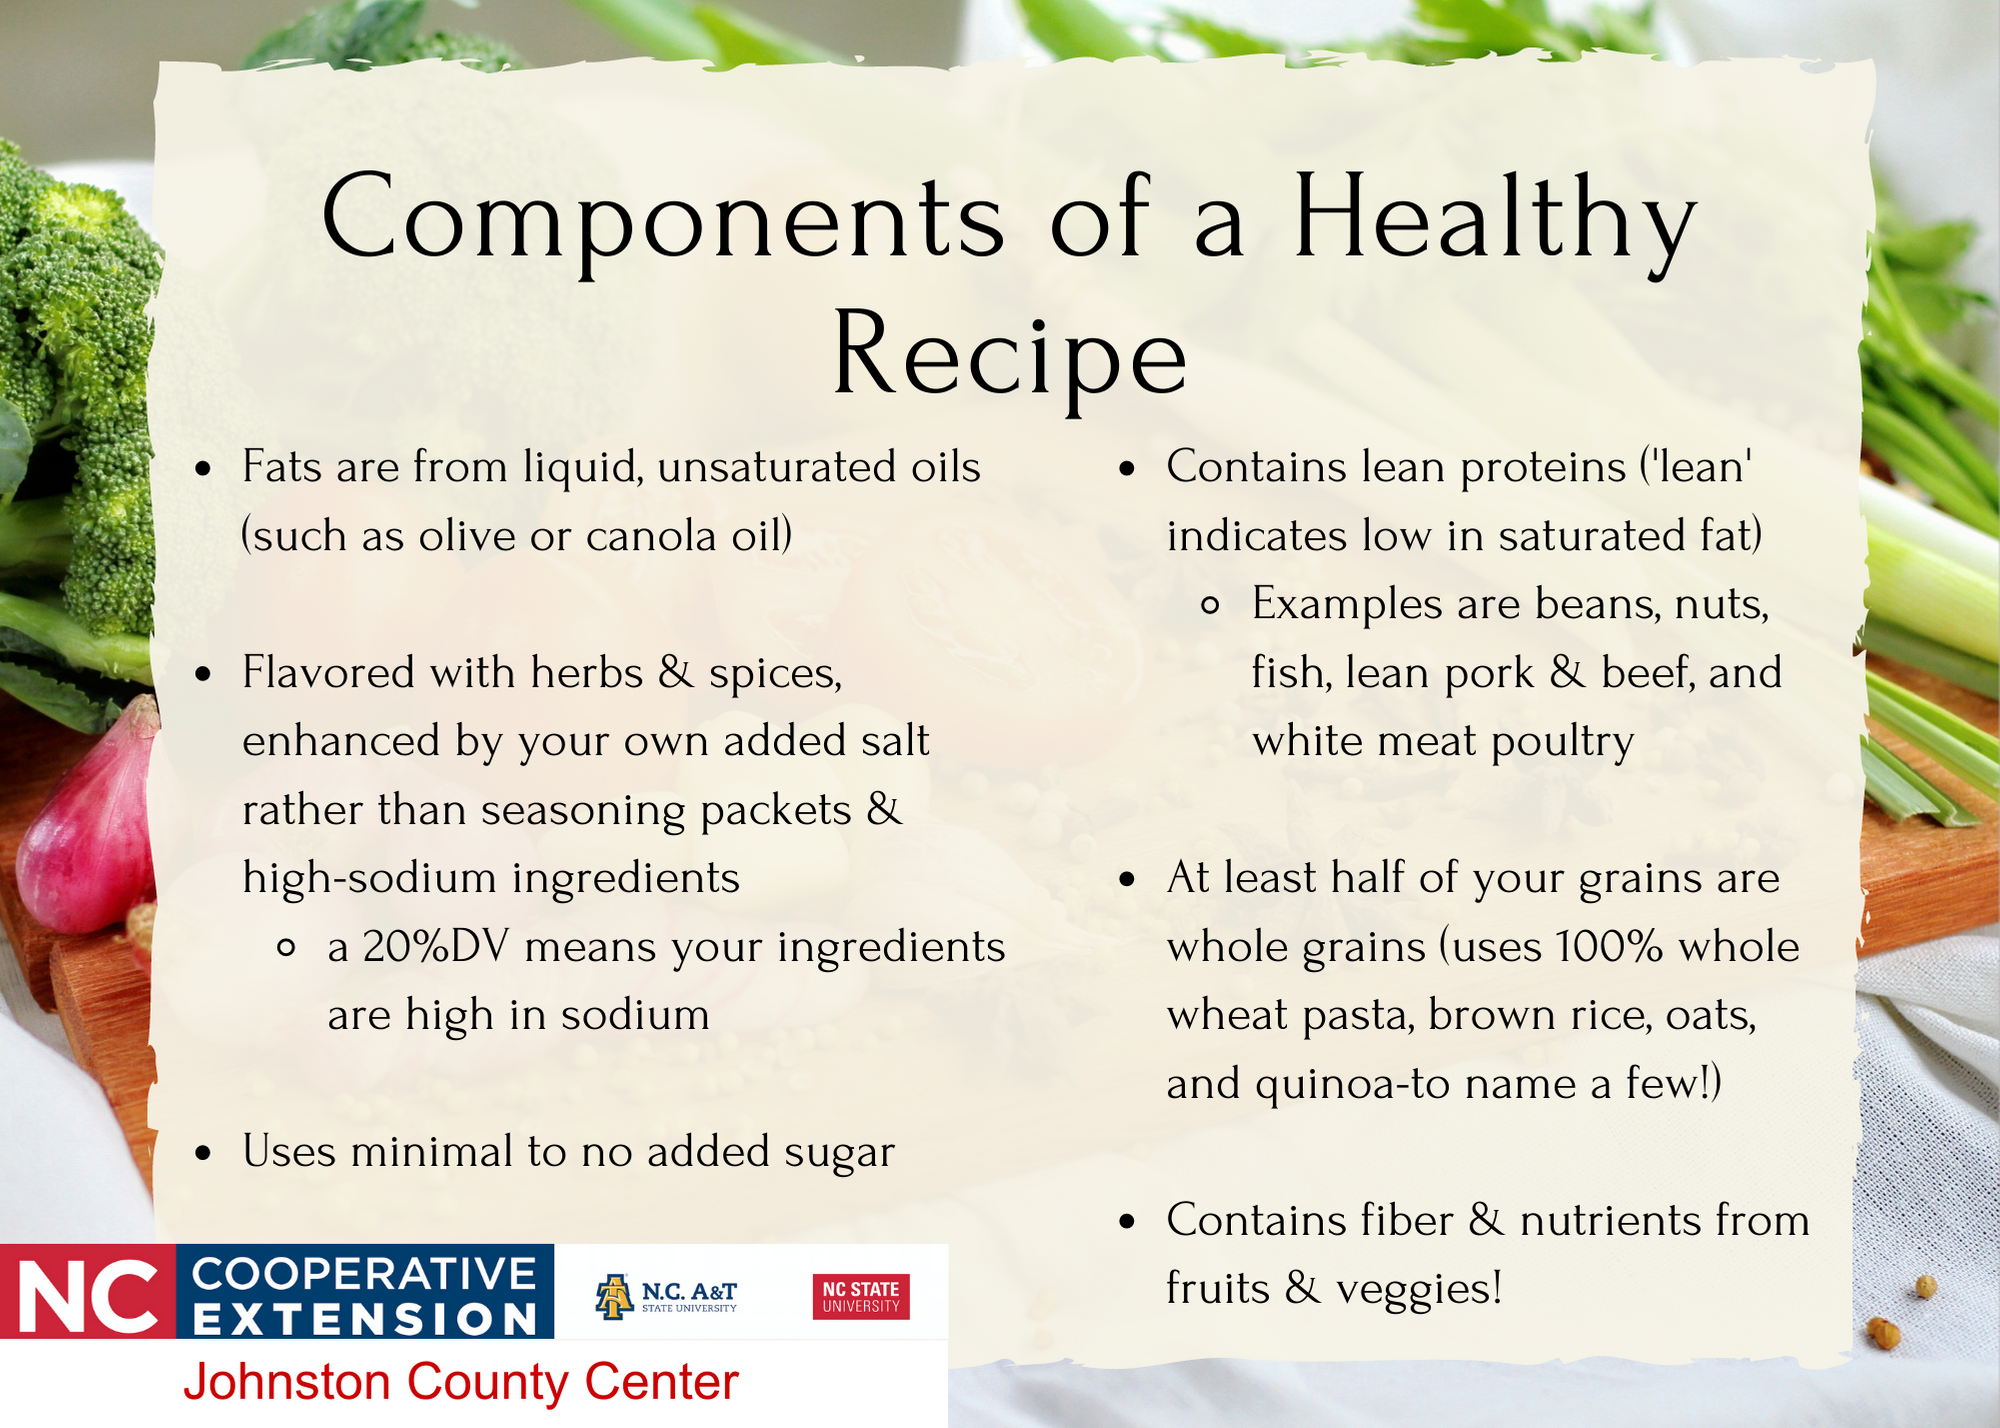 Components of a Healthy Recipe flyer image